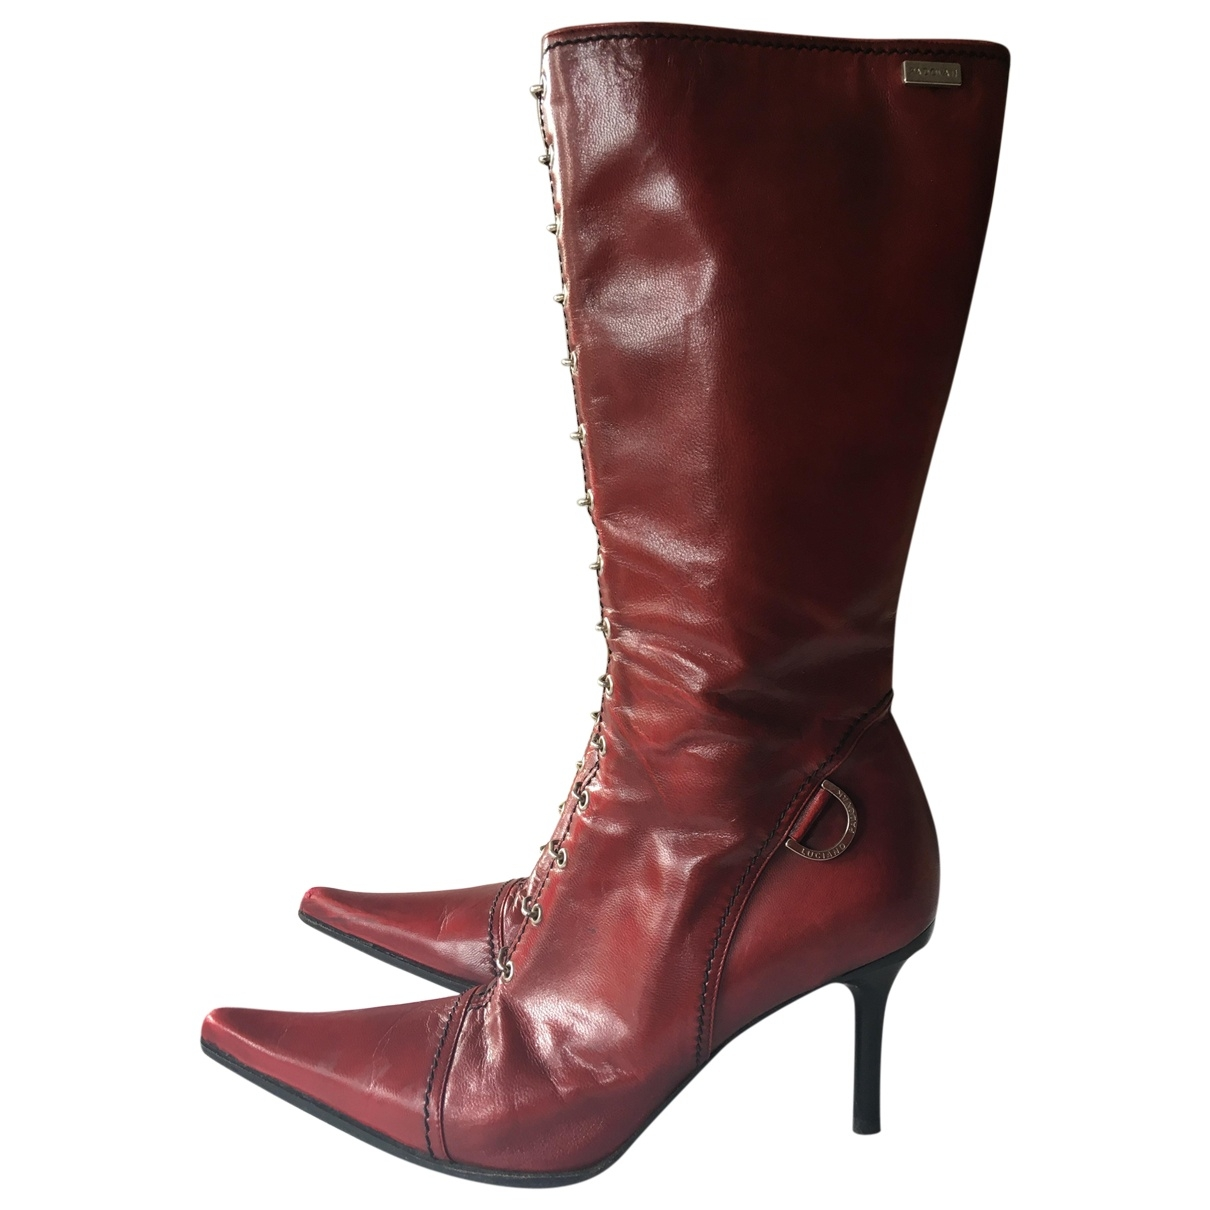 Luciano Padovan \N Red Leather Boots for Women 38 EU